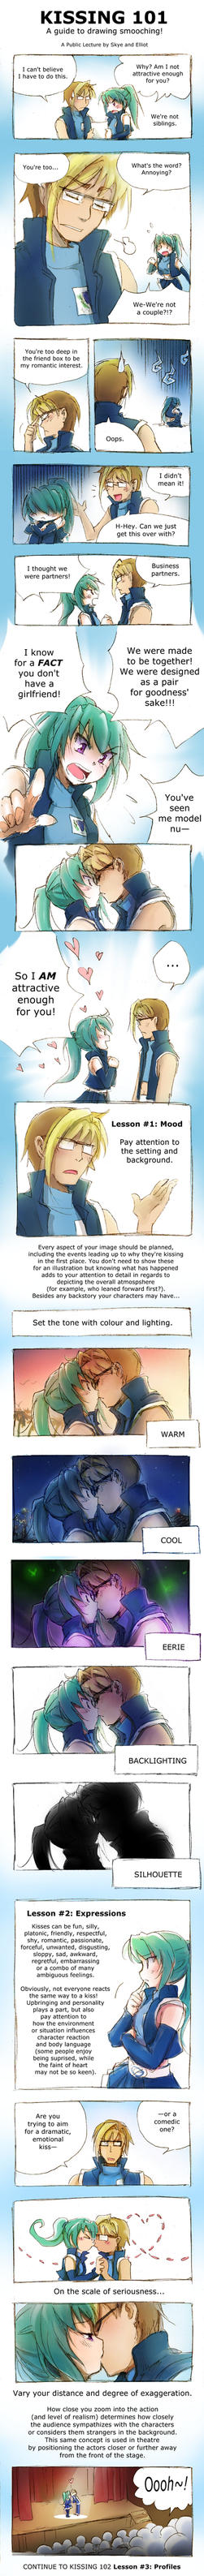 Kissing 101 by Achiru-et-al